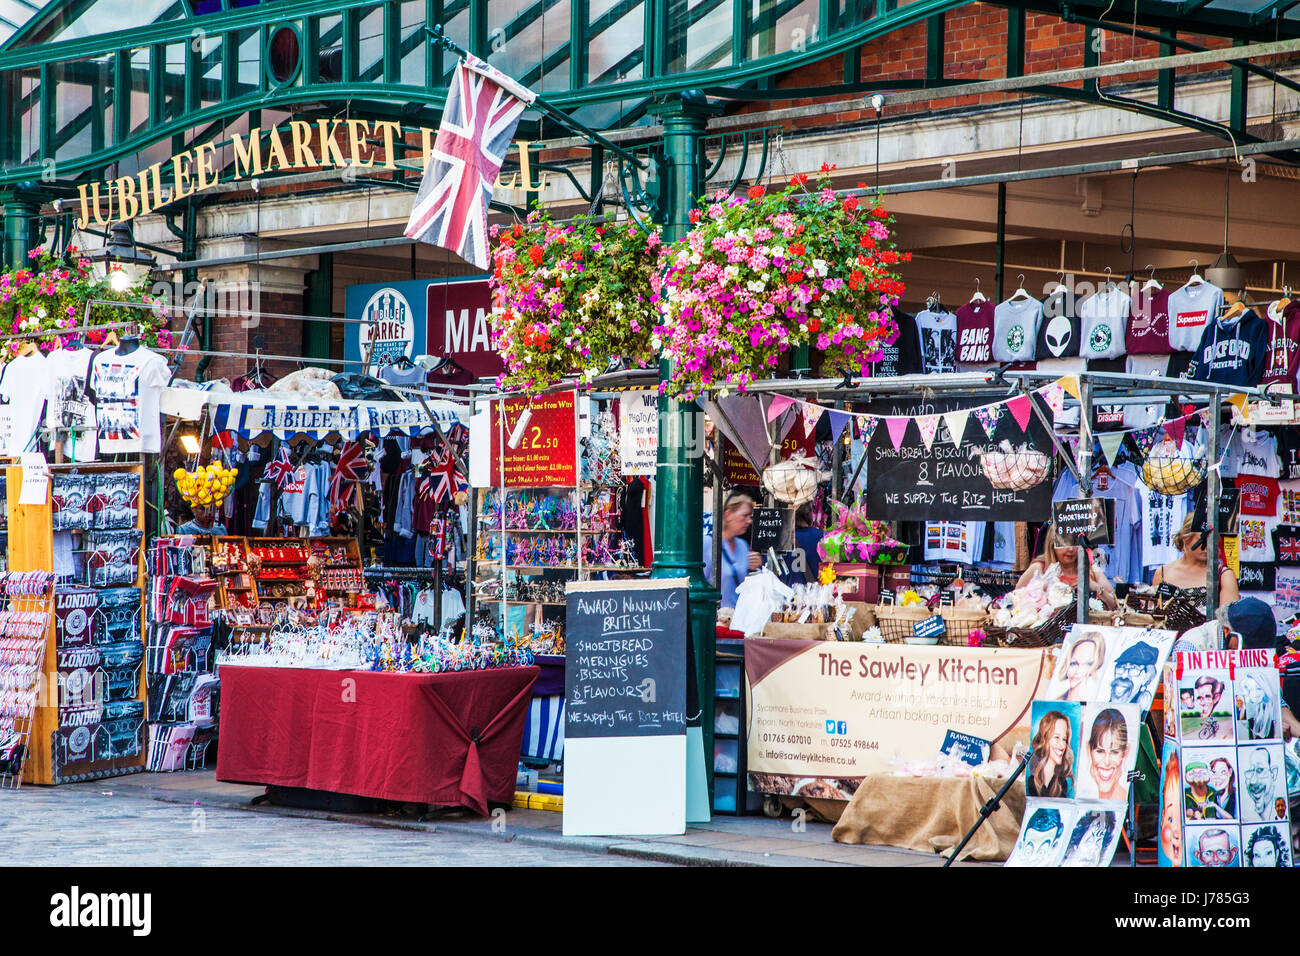 The Jubilee Market Hall in Covent Garden in London. - Stock Image